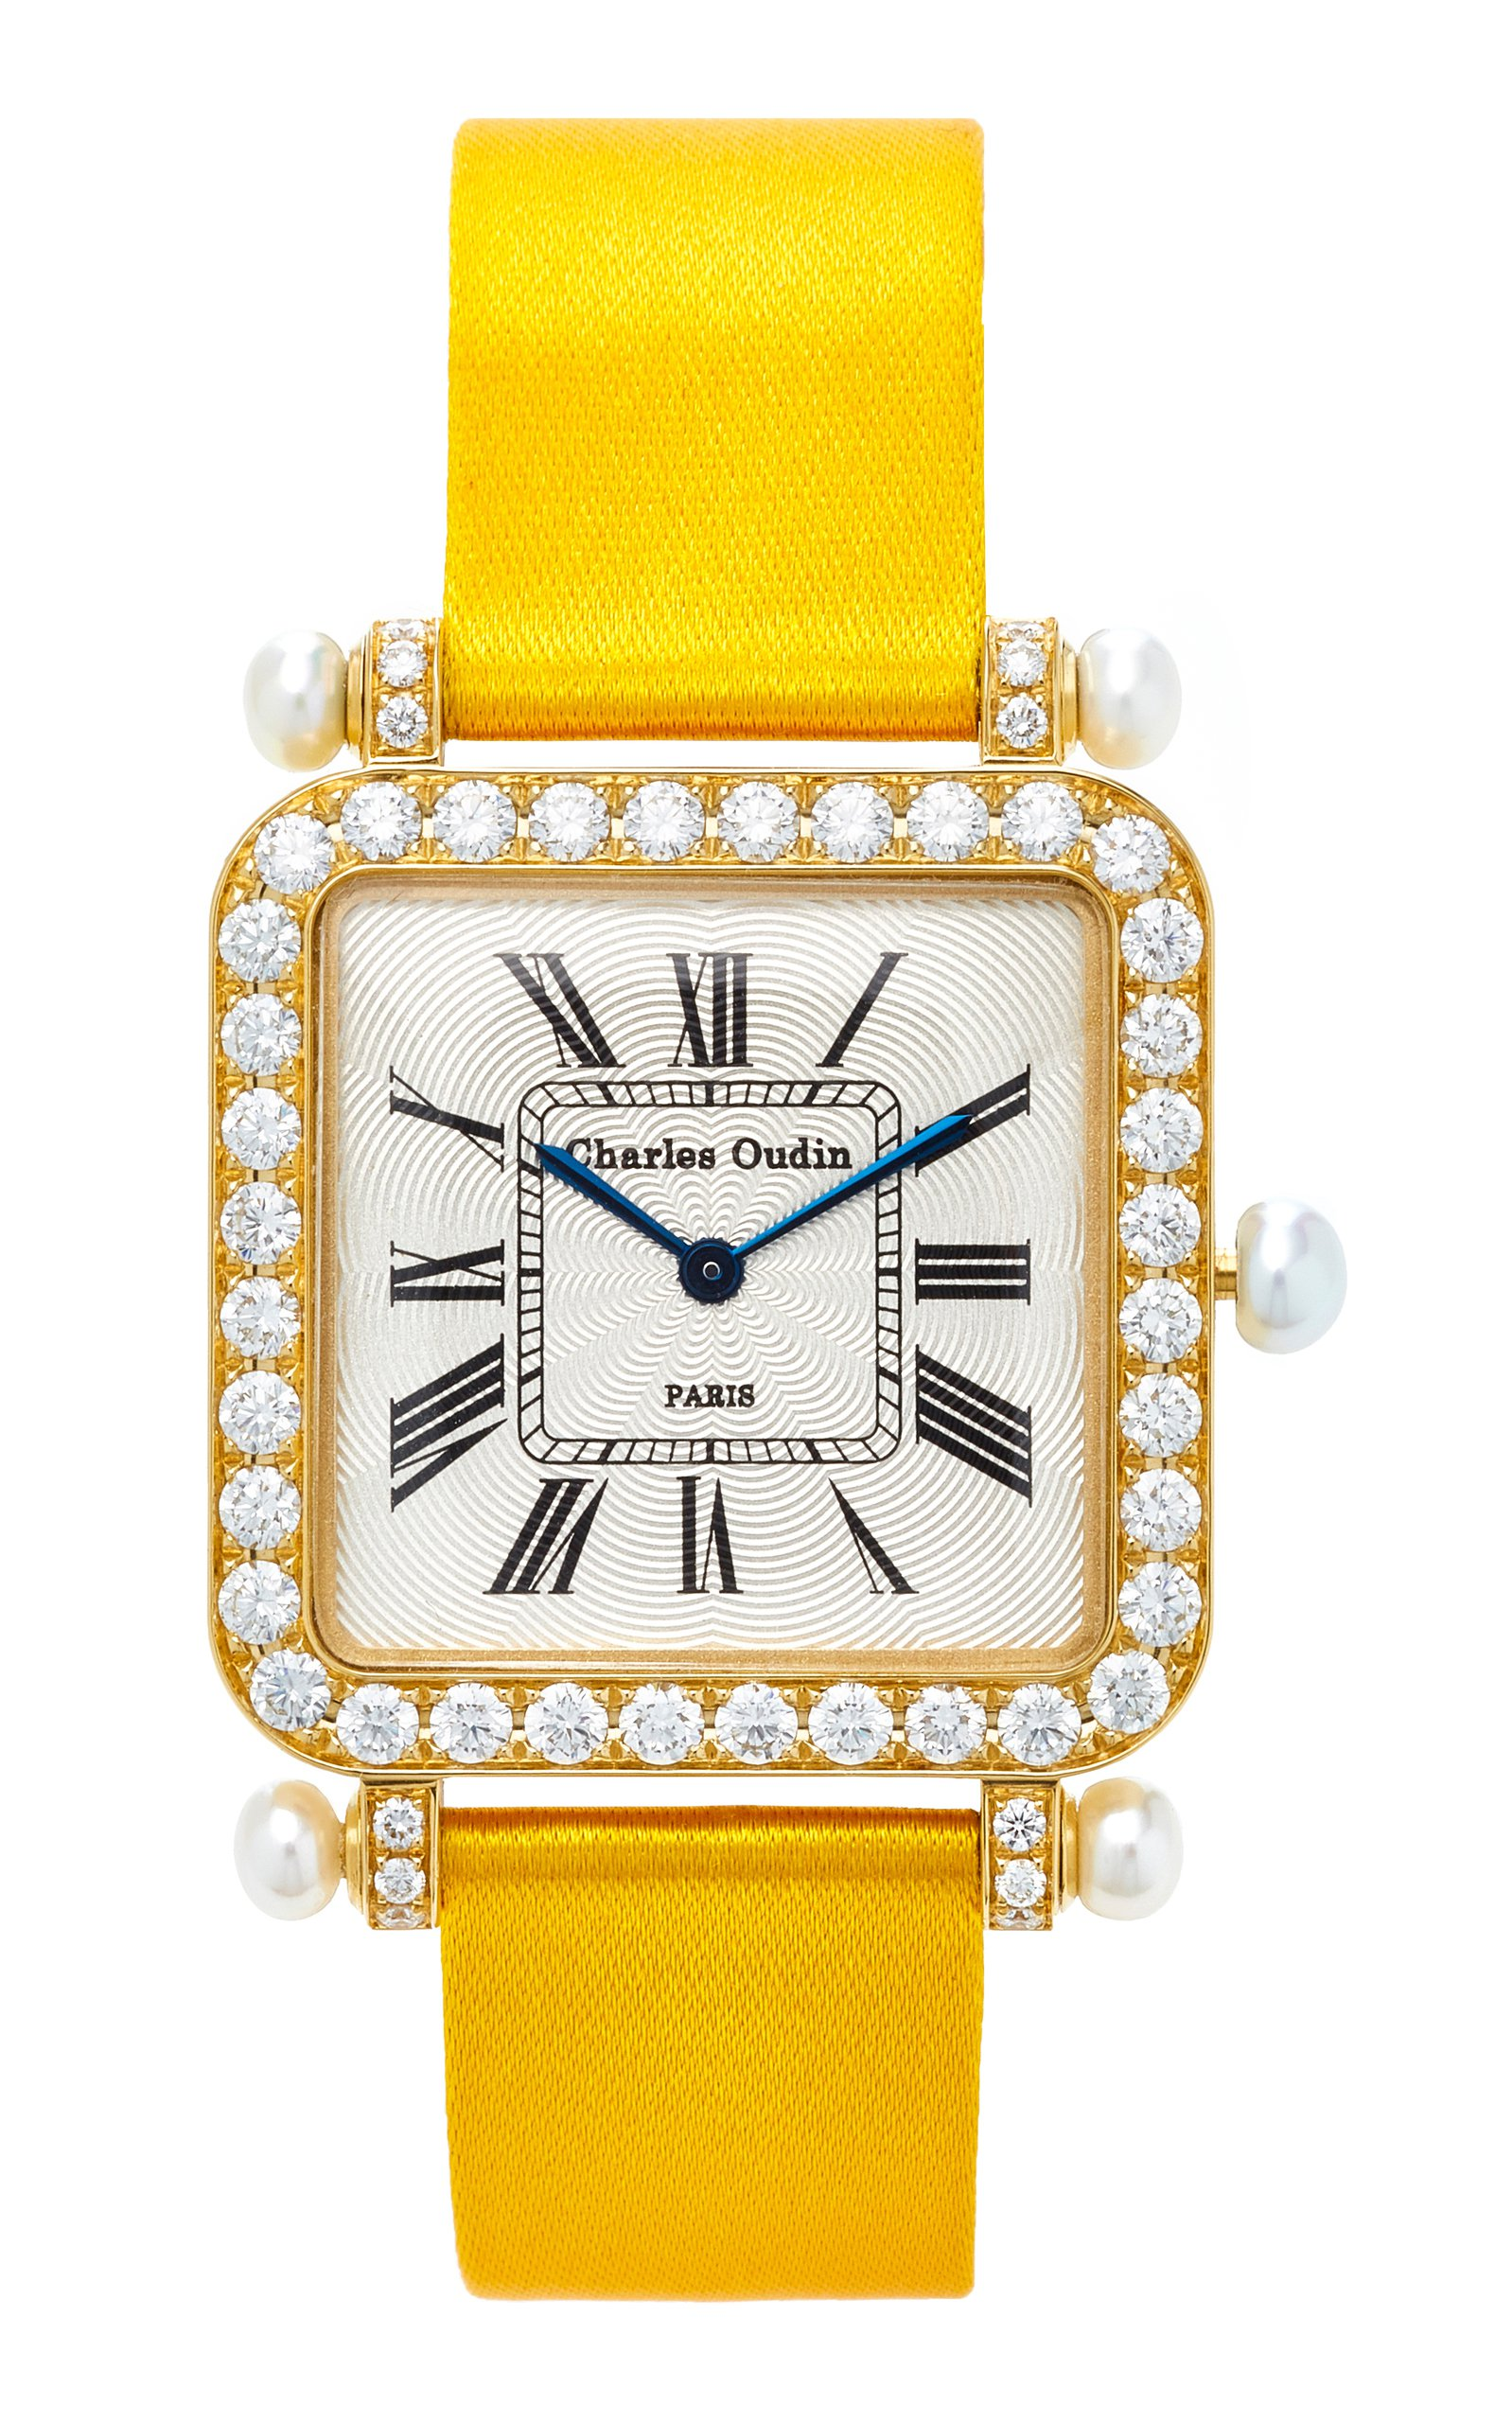 18K Yellow Gold Diamond and Pearl Large Pansy Retro Watch by Charles Oudin | Moda Operandi